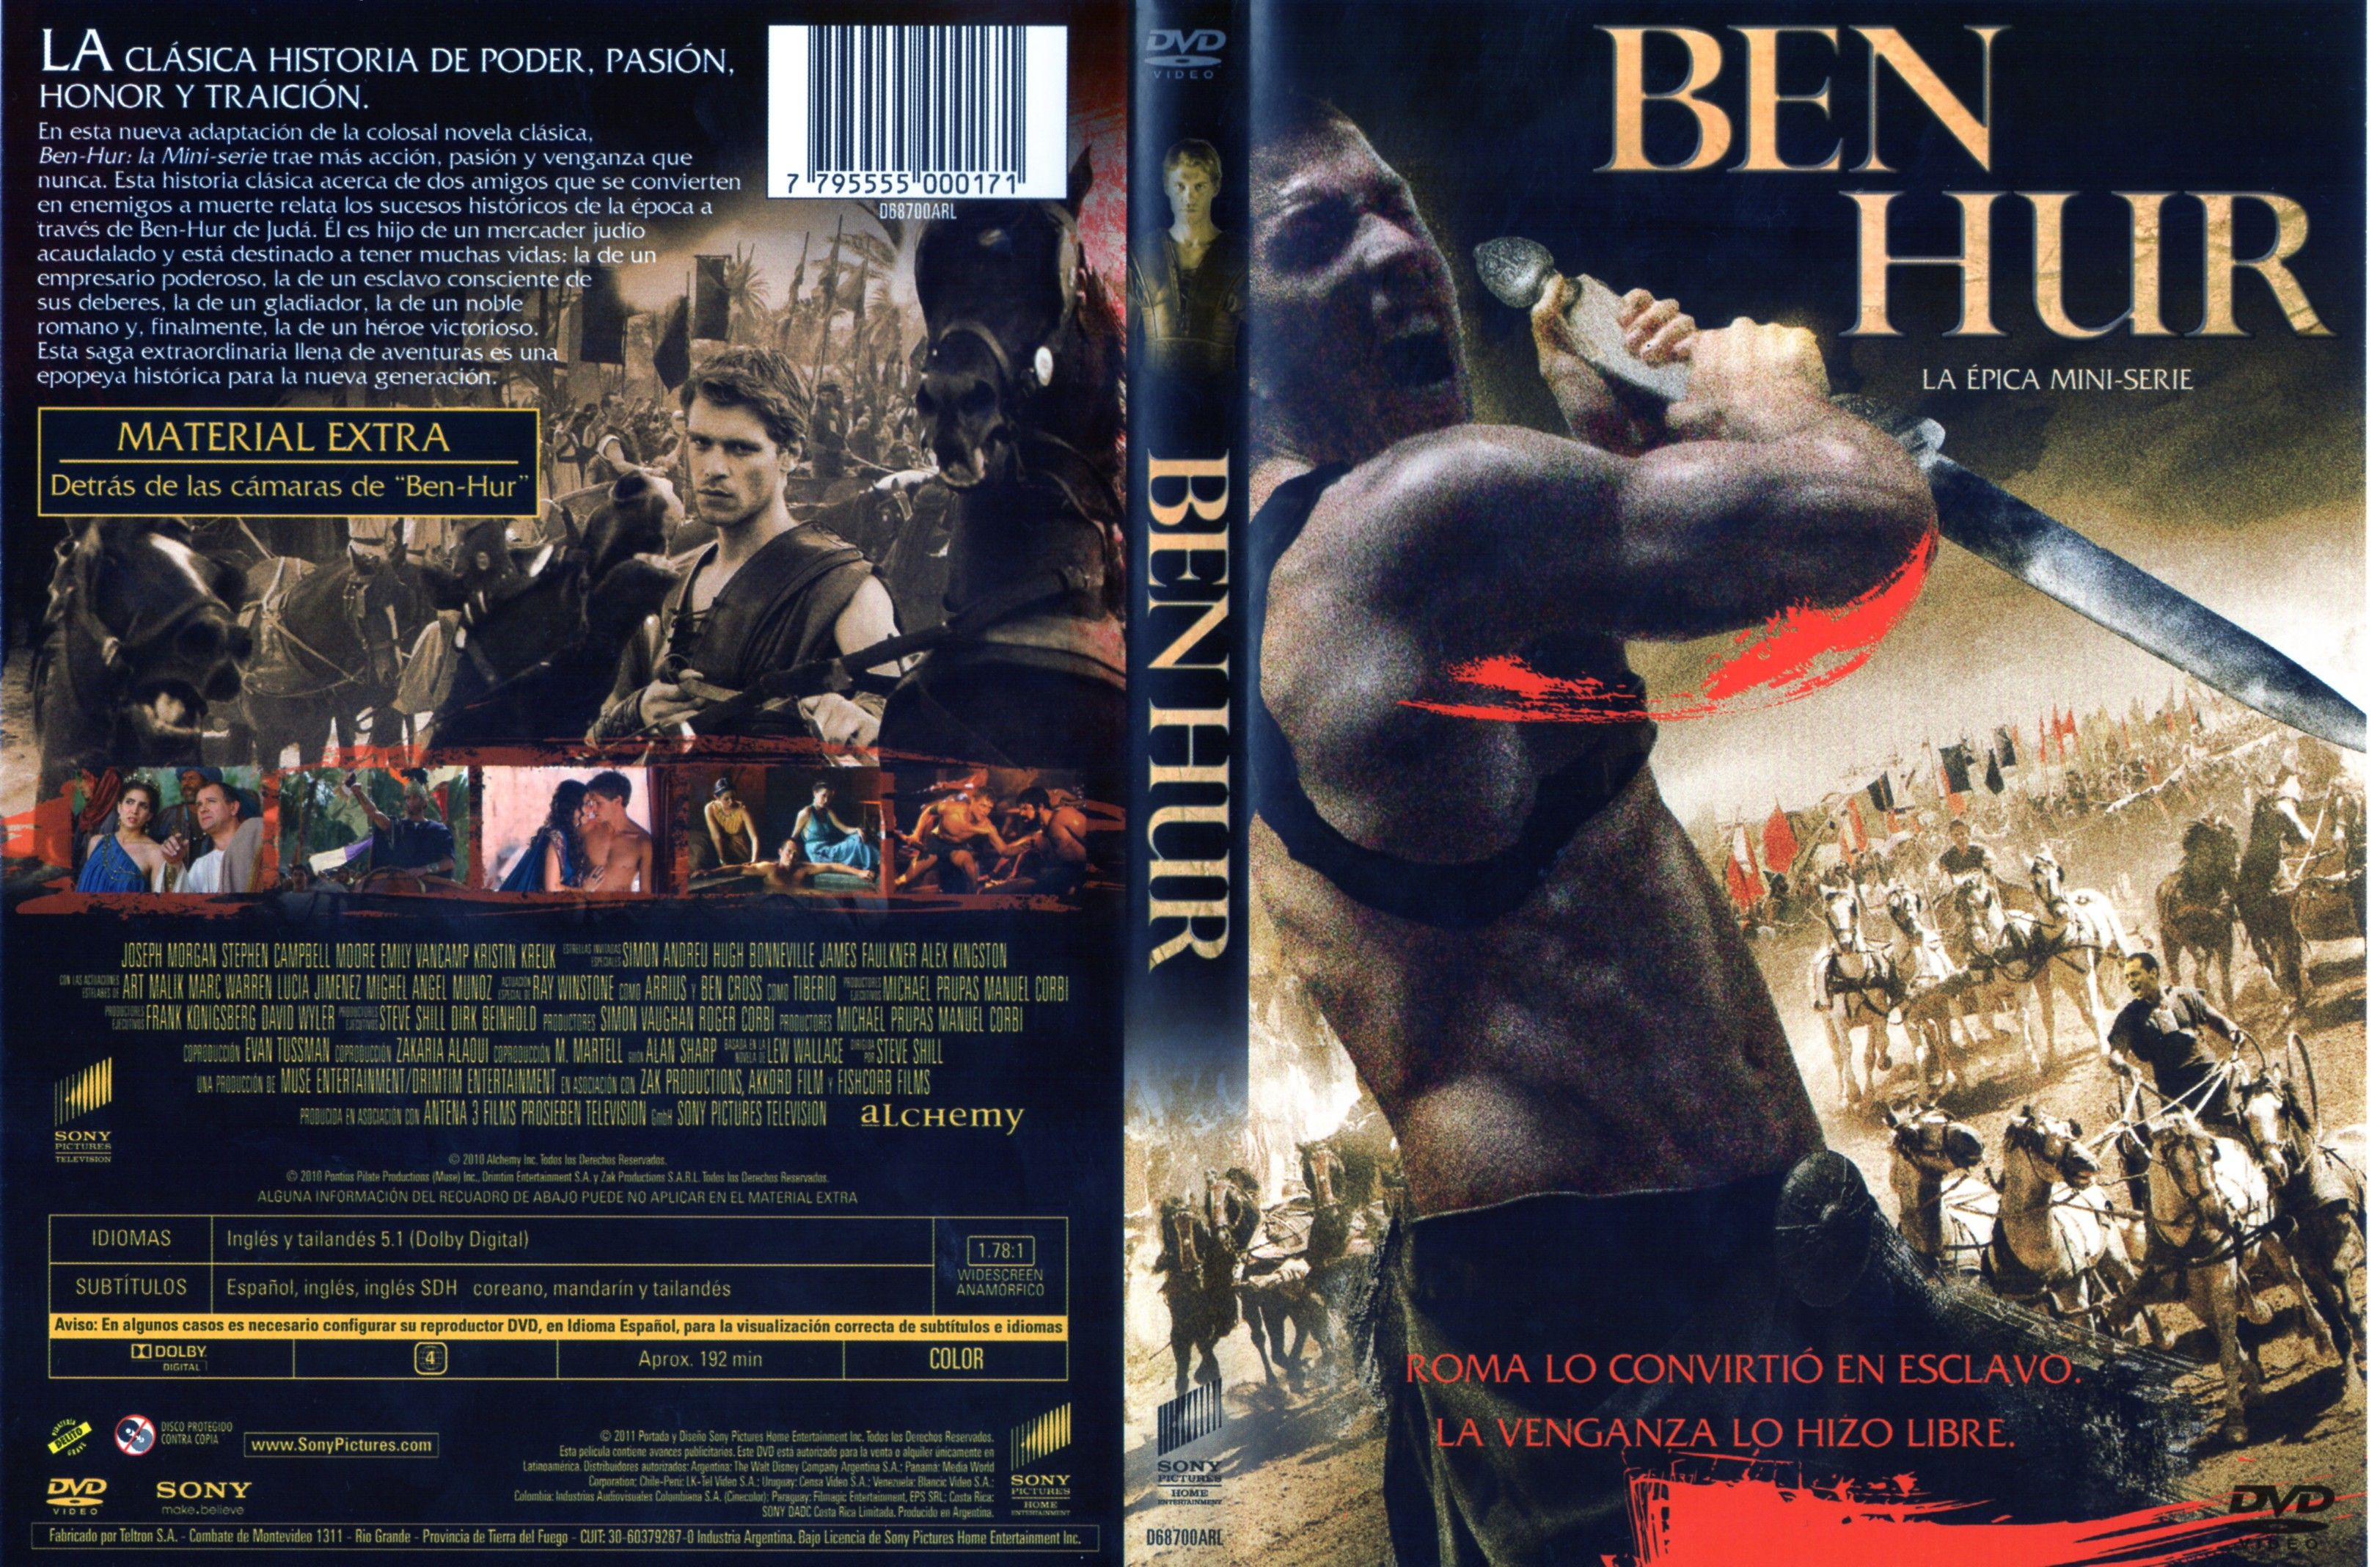 ben hur hispanic singles Property valuation of ben hur drive, houston, tx: 1205, 1209, 1213, 1217, 1221, 1238, 1239, 1241, 1242, 1245 (tax assessments.